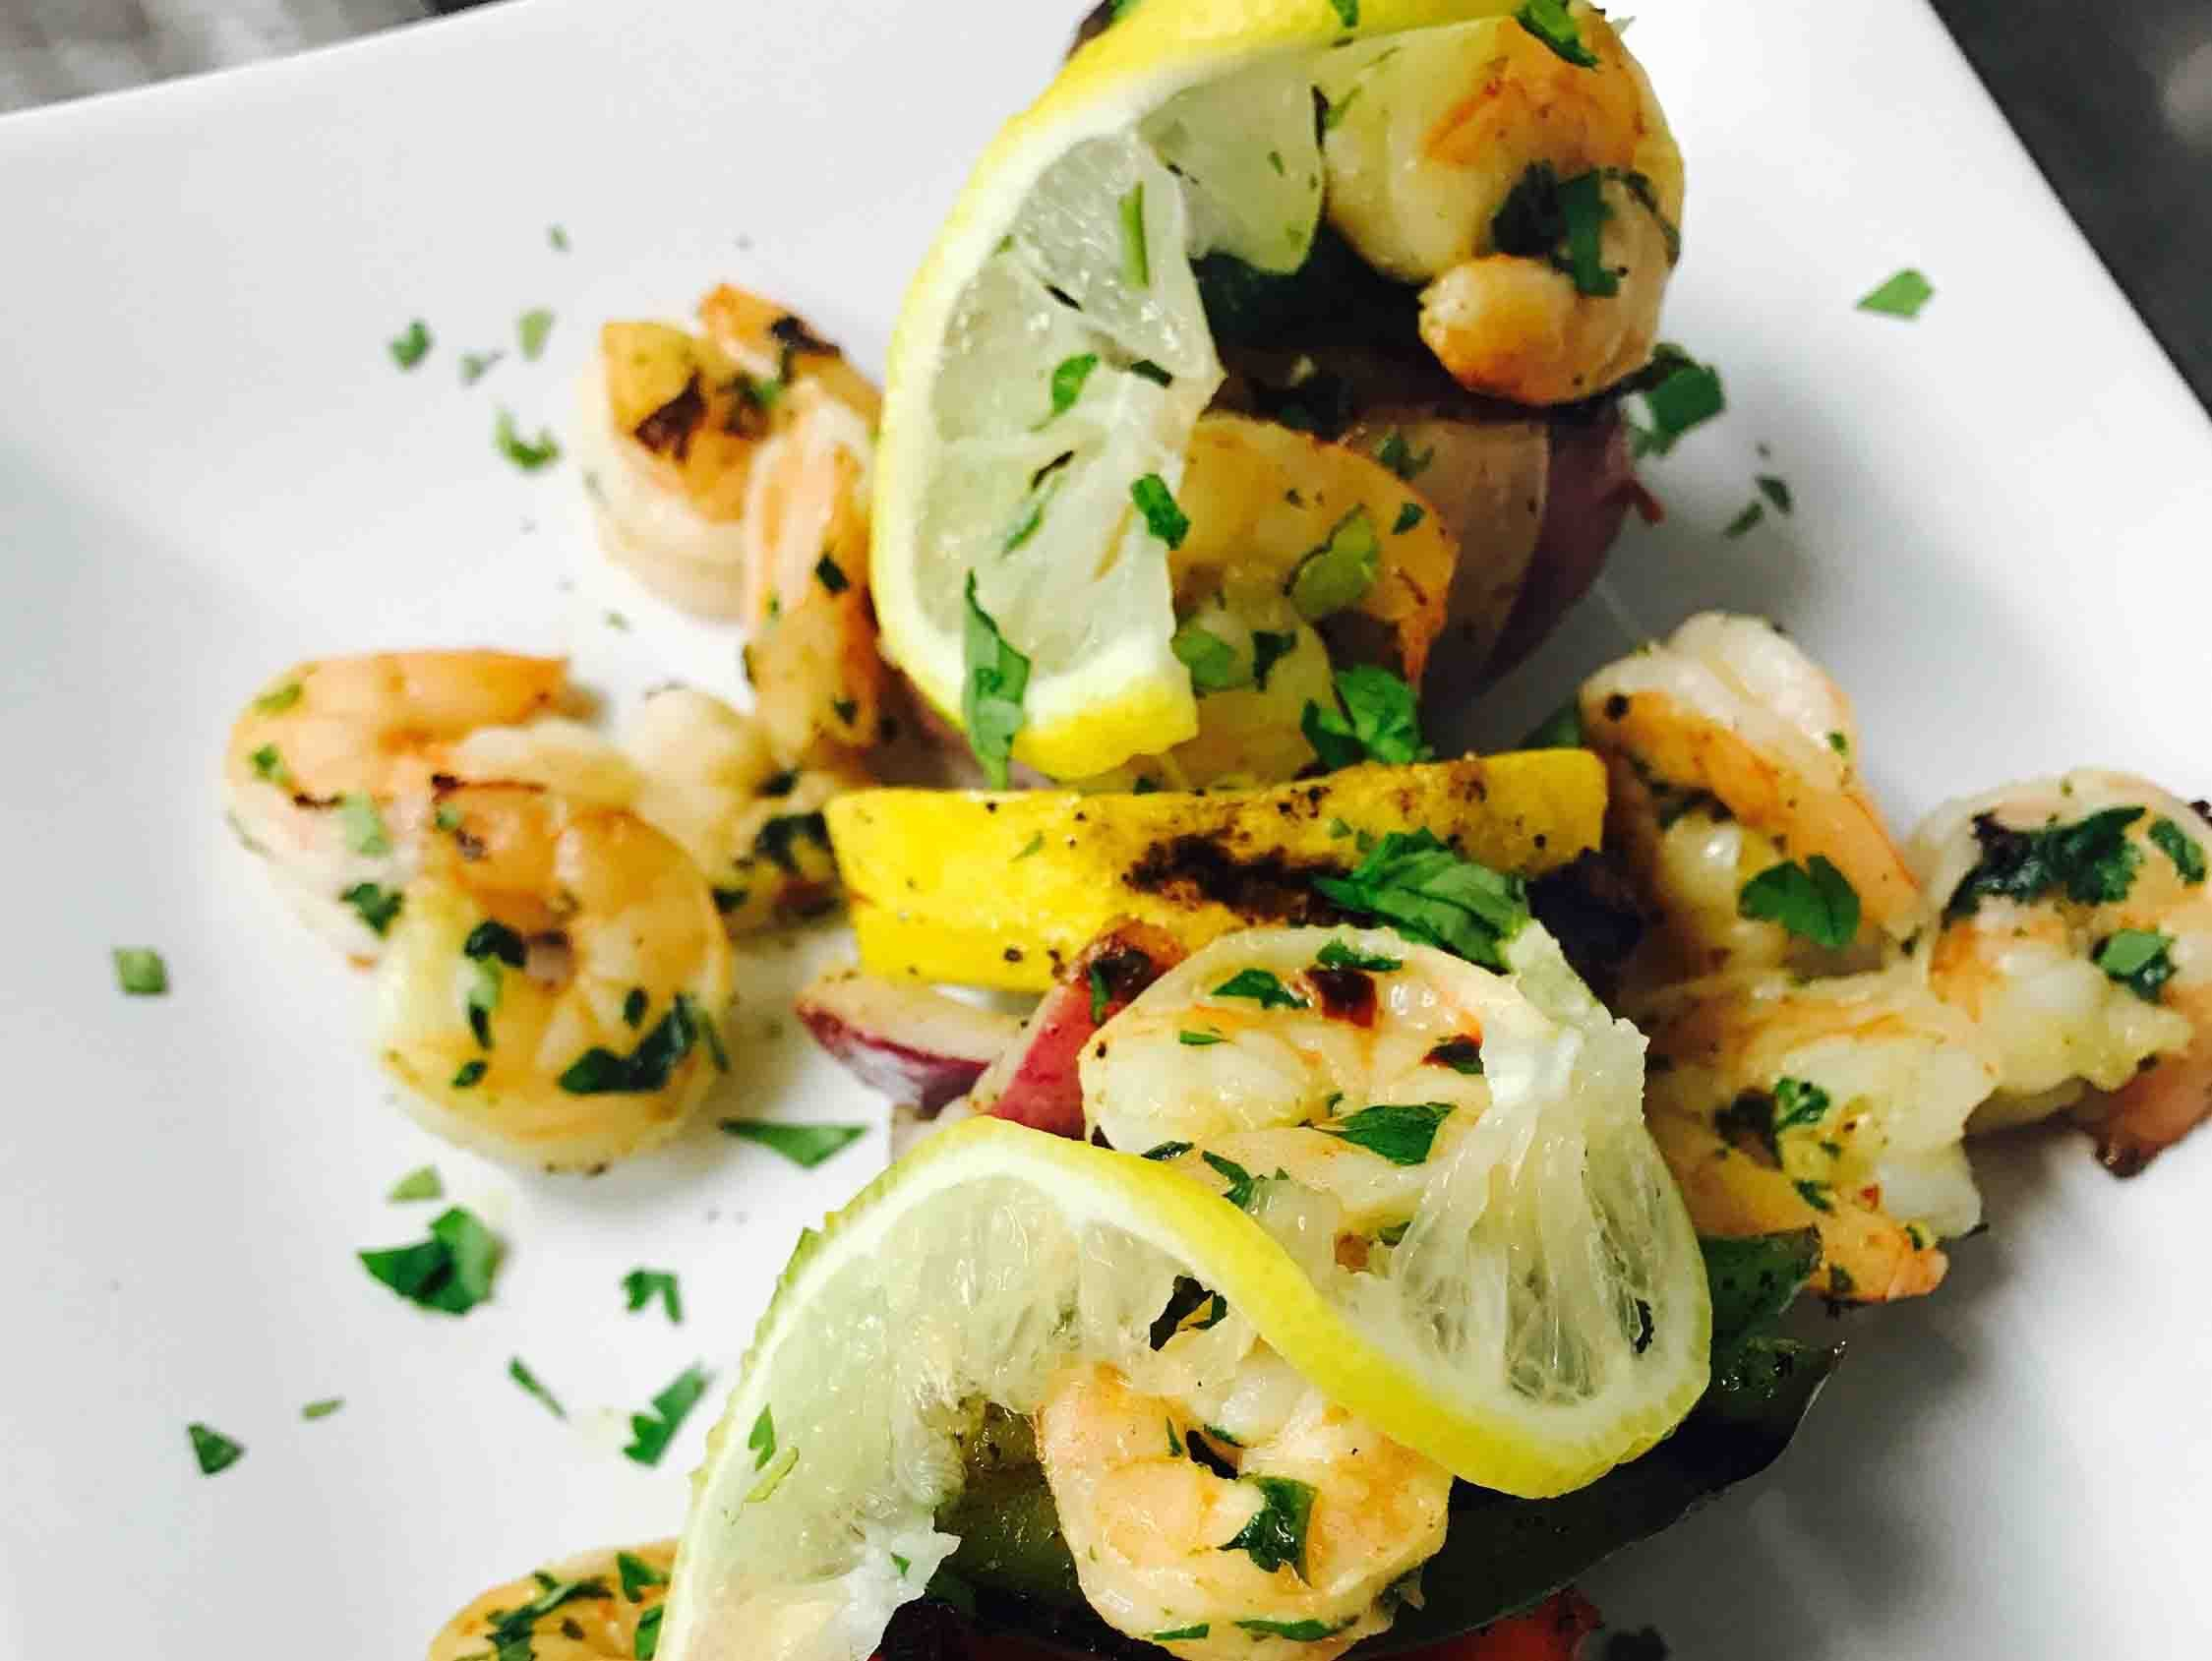 Lemon shrimp with vegetables